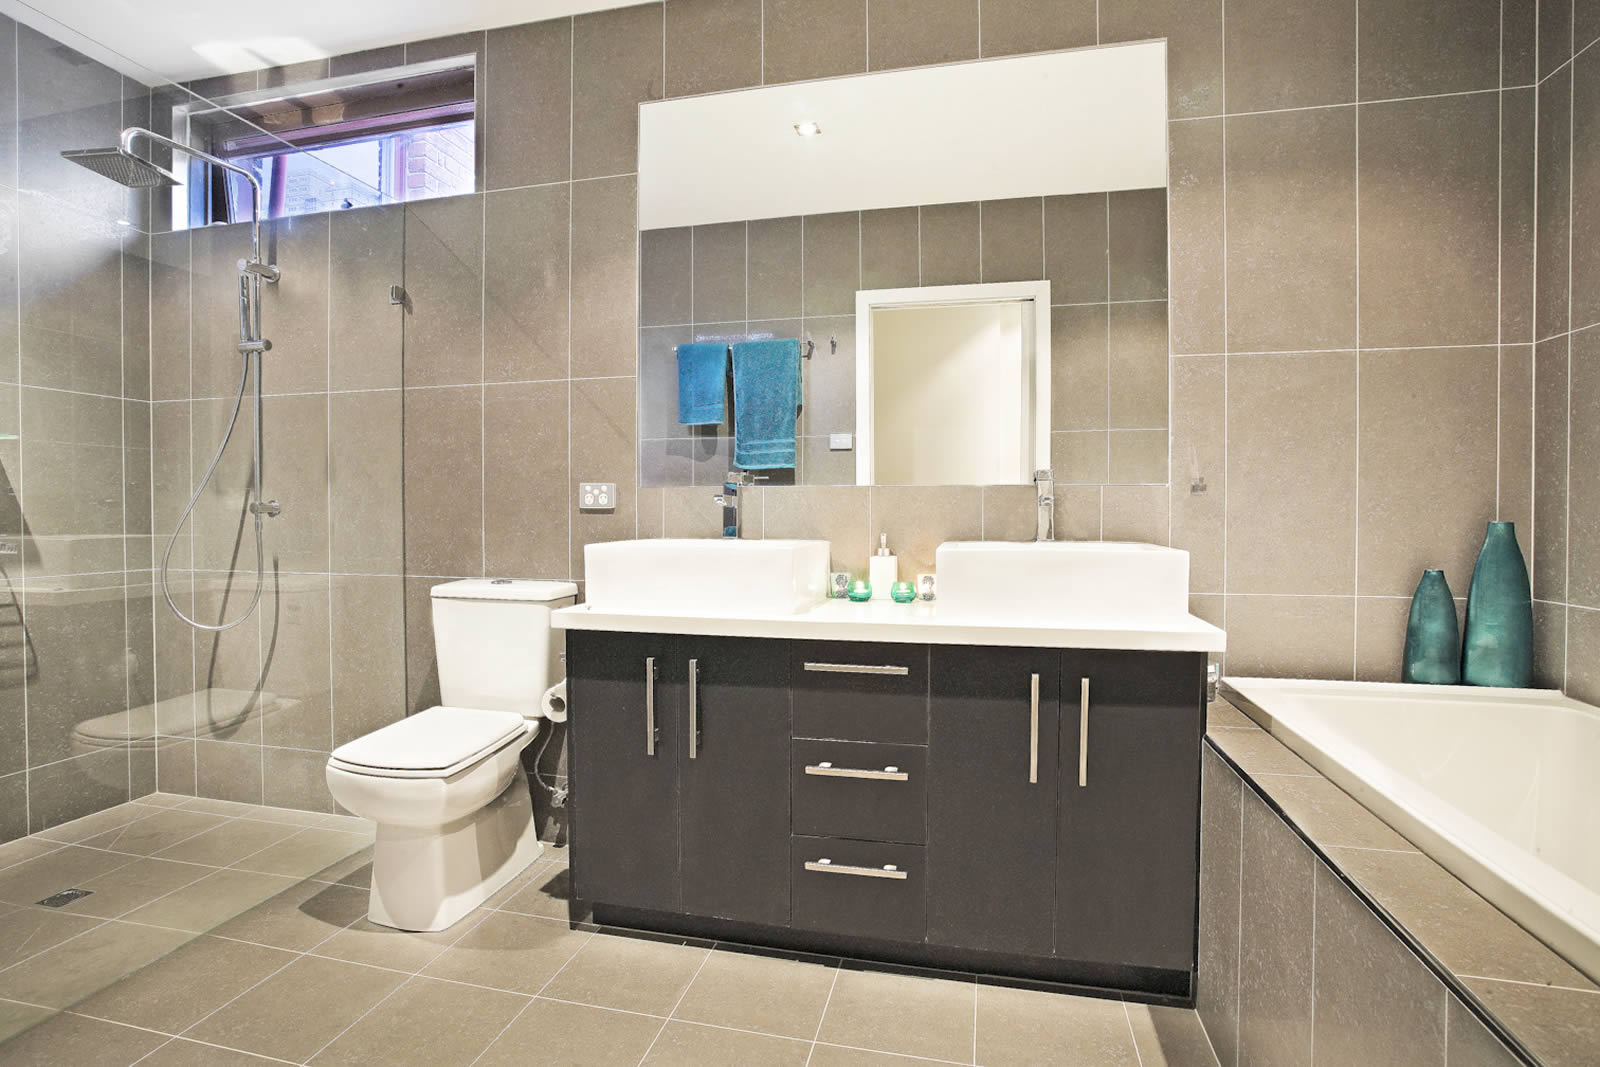 Our work contemporary bathrooms archives cos interiors pty ltd exceptional best cabinet Modern australian bathroom design